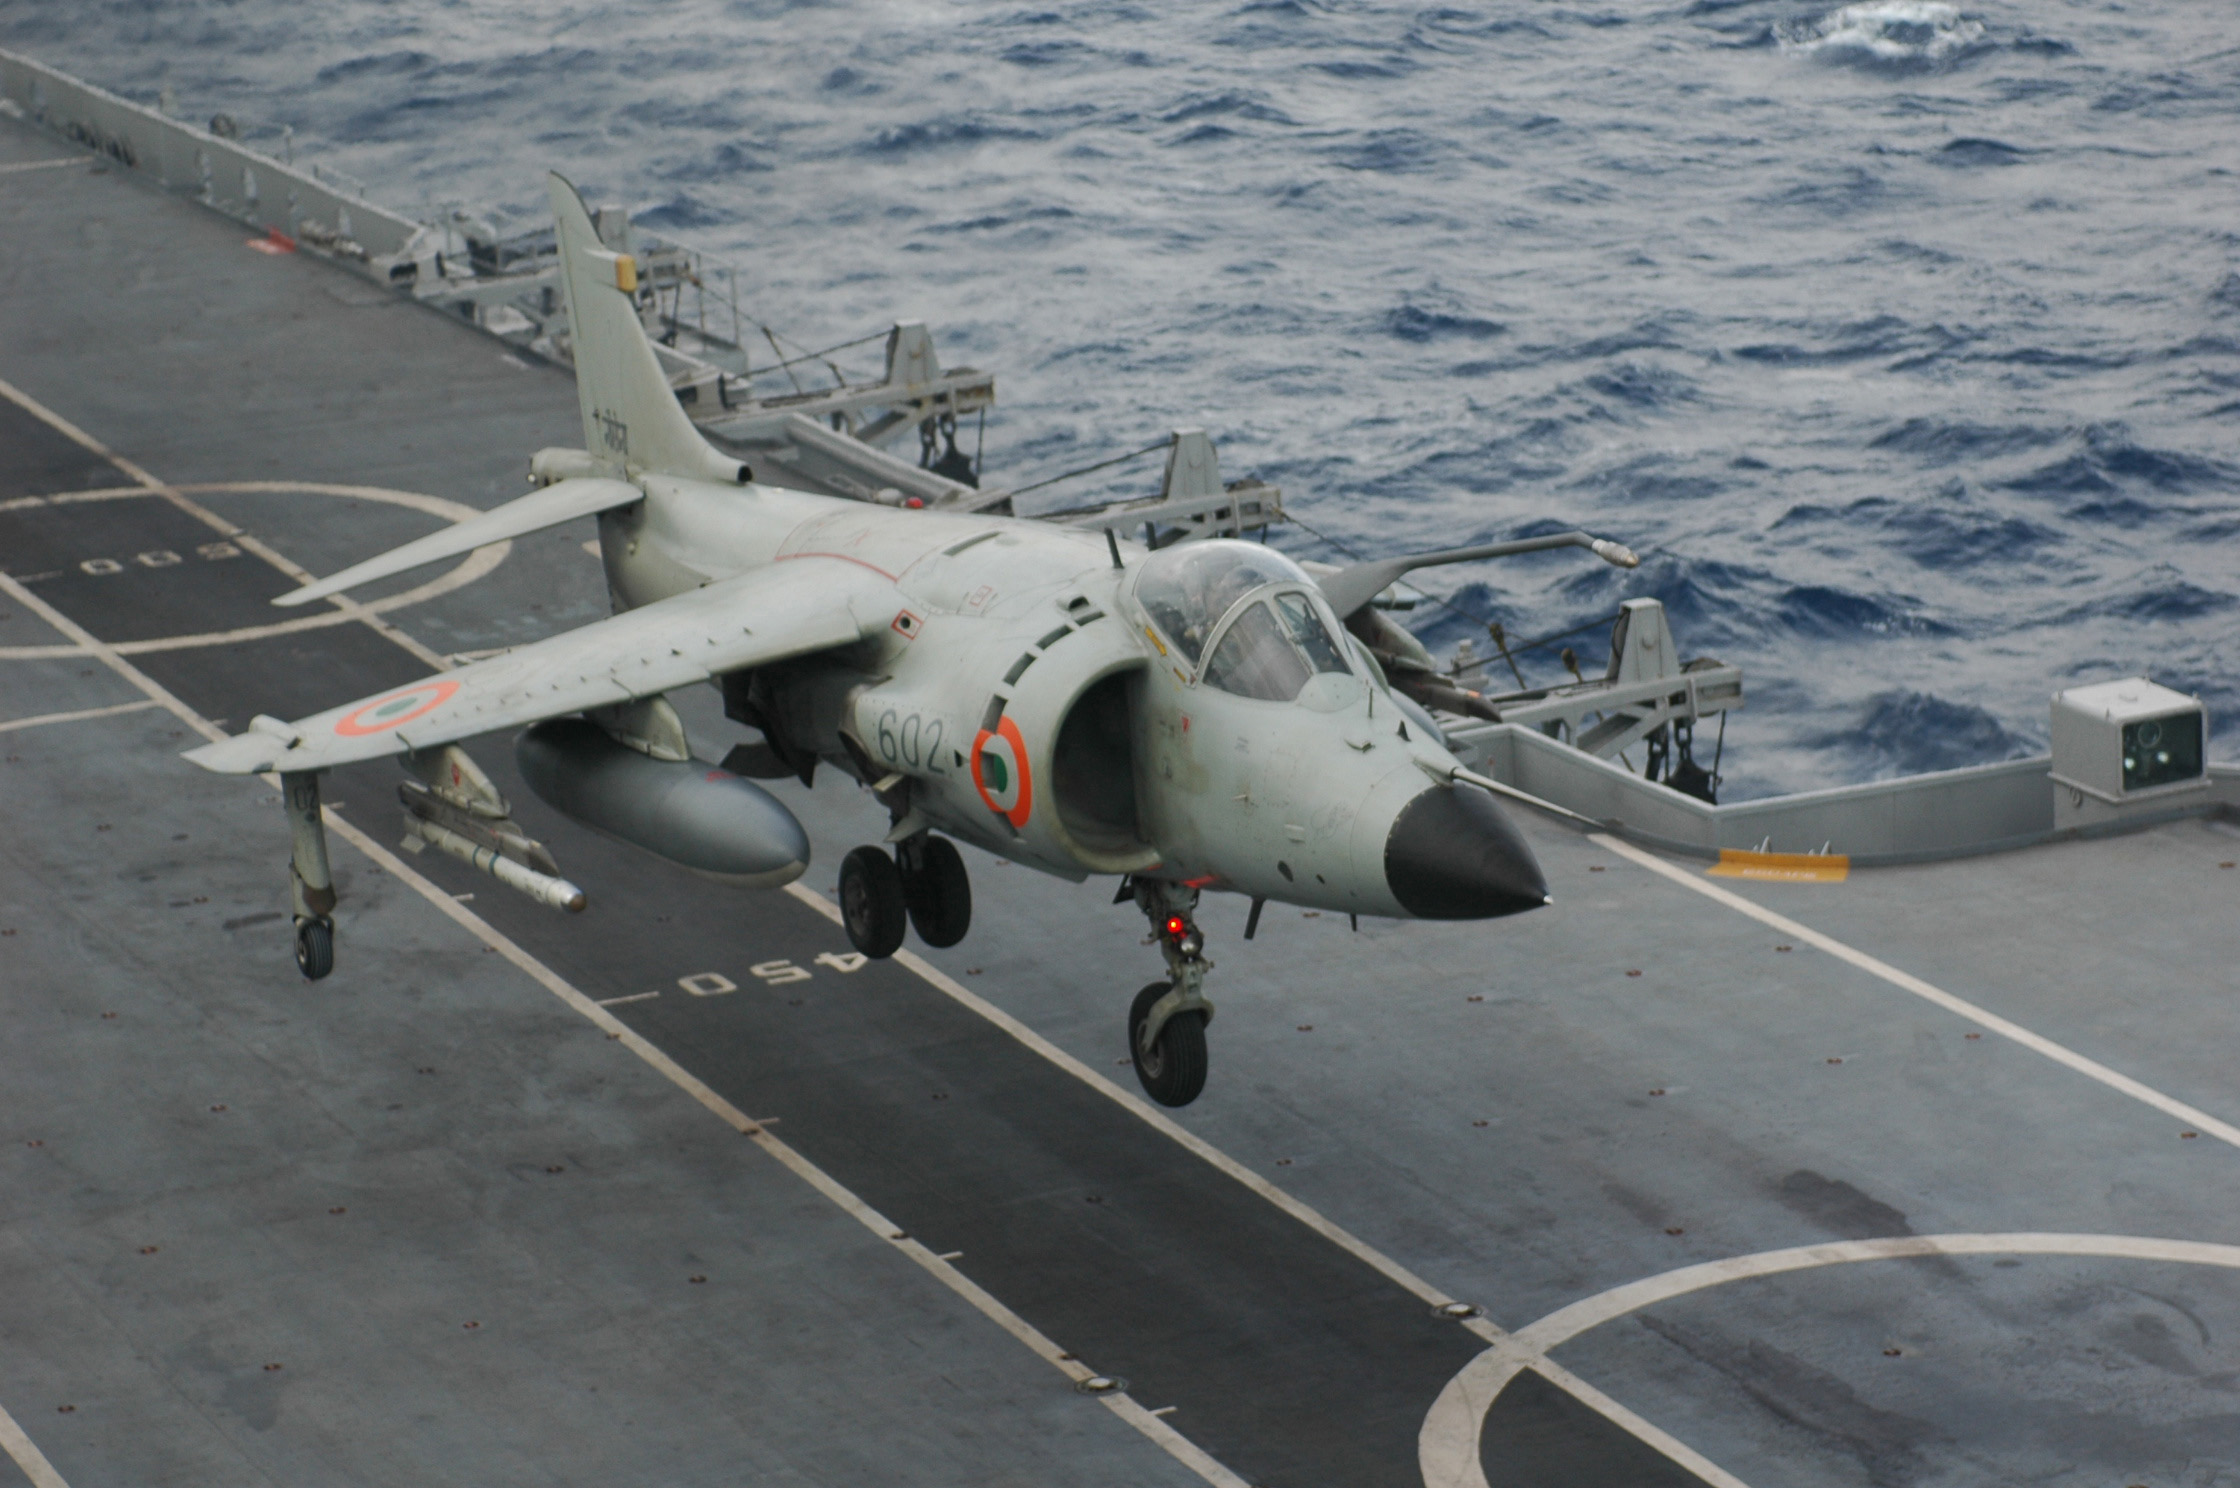 USA to provide EMALS technology to India for aircraft carriers